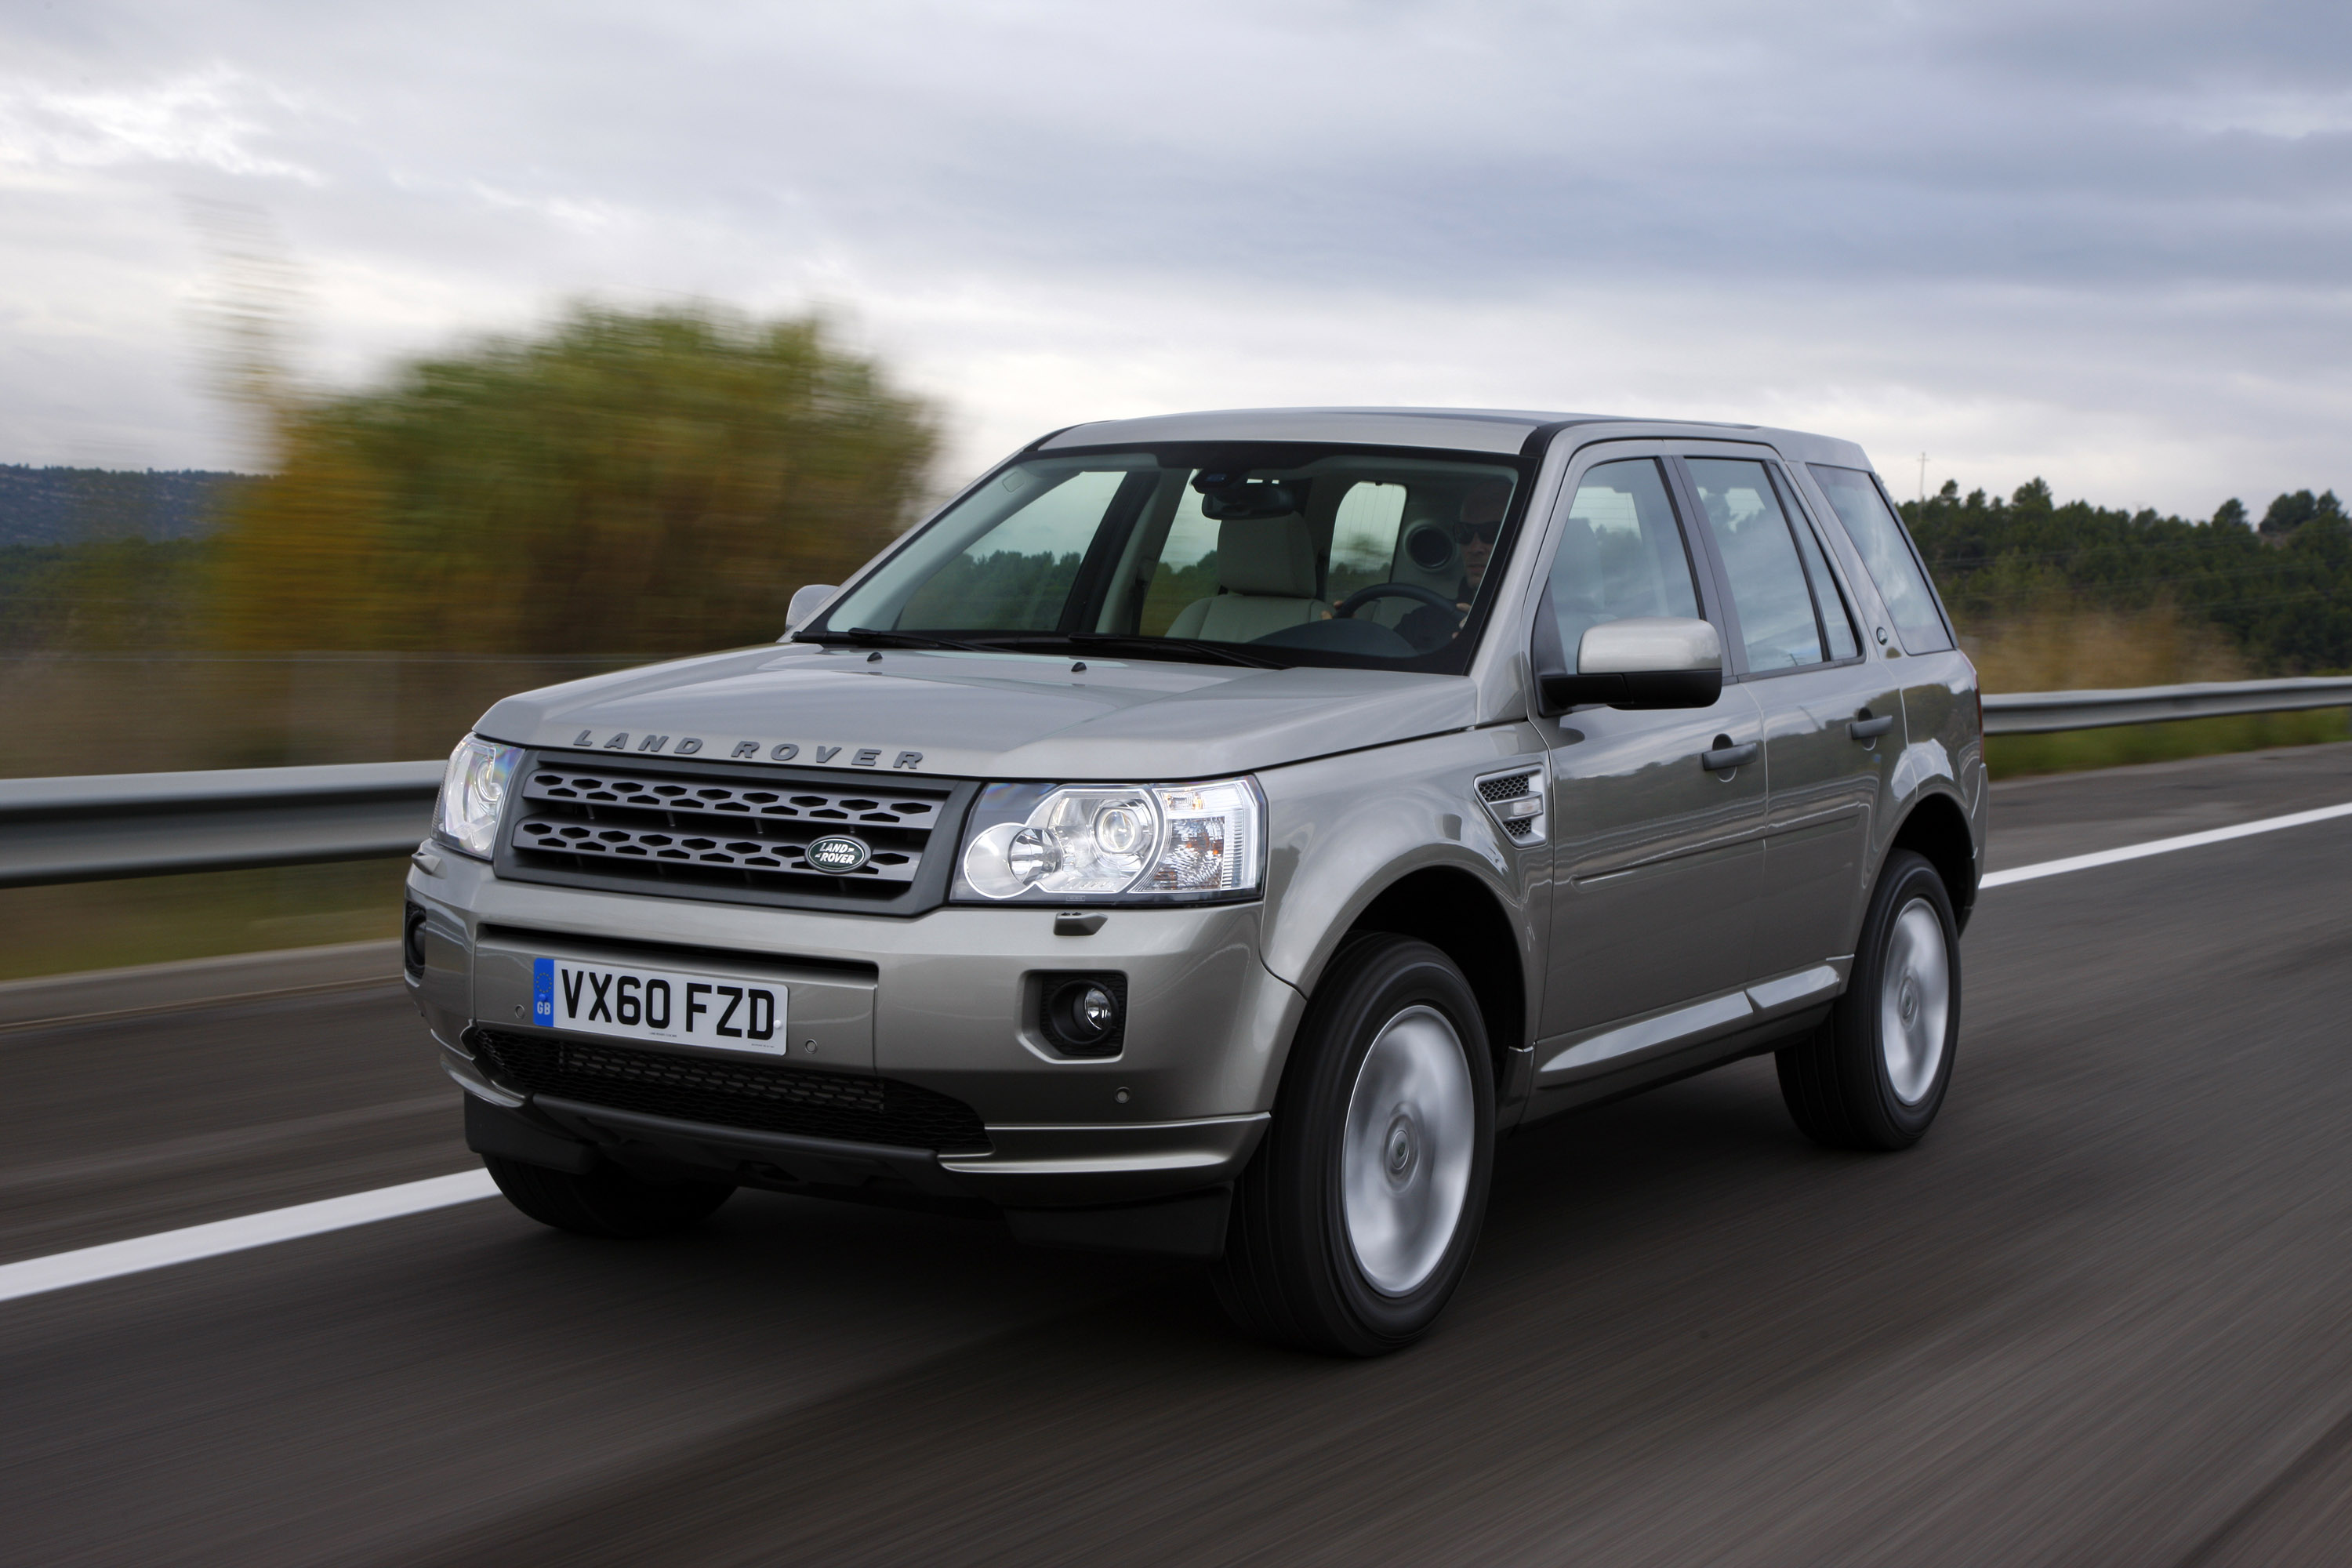 Land Rover Freelander 2 photo #1